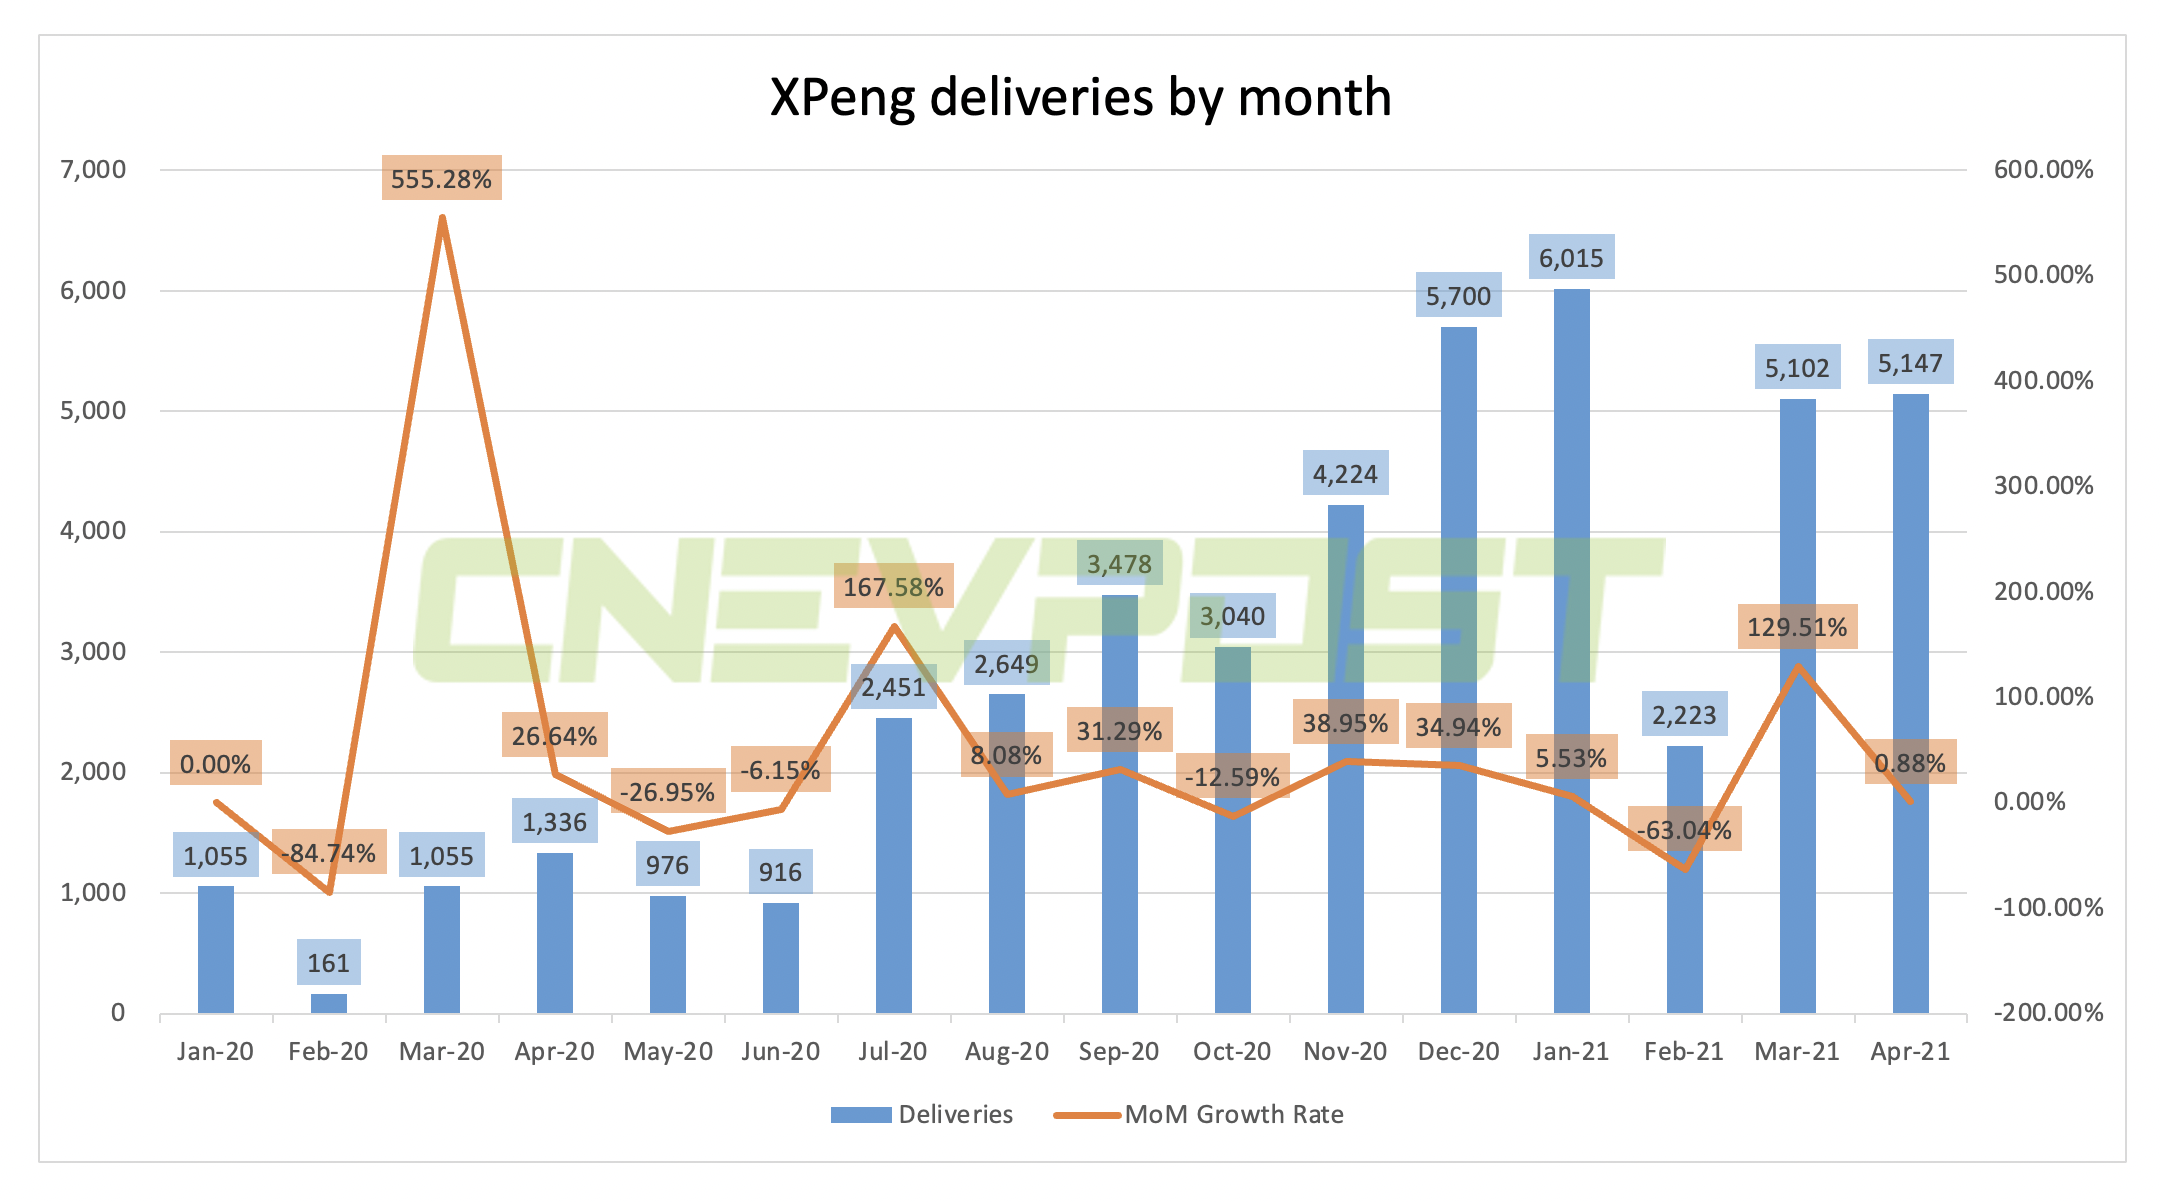 XPeng delivers 5,147 vehicles in April, up 0.88% from March-CnEVPost